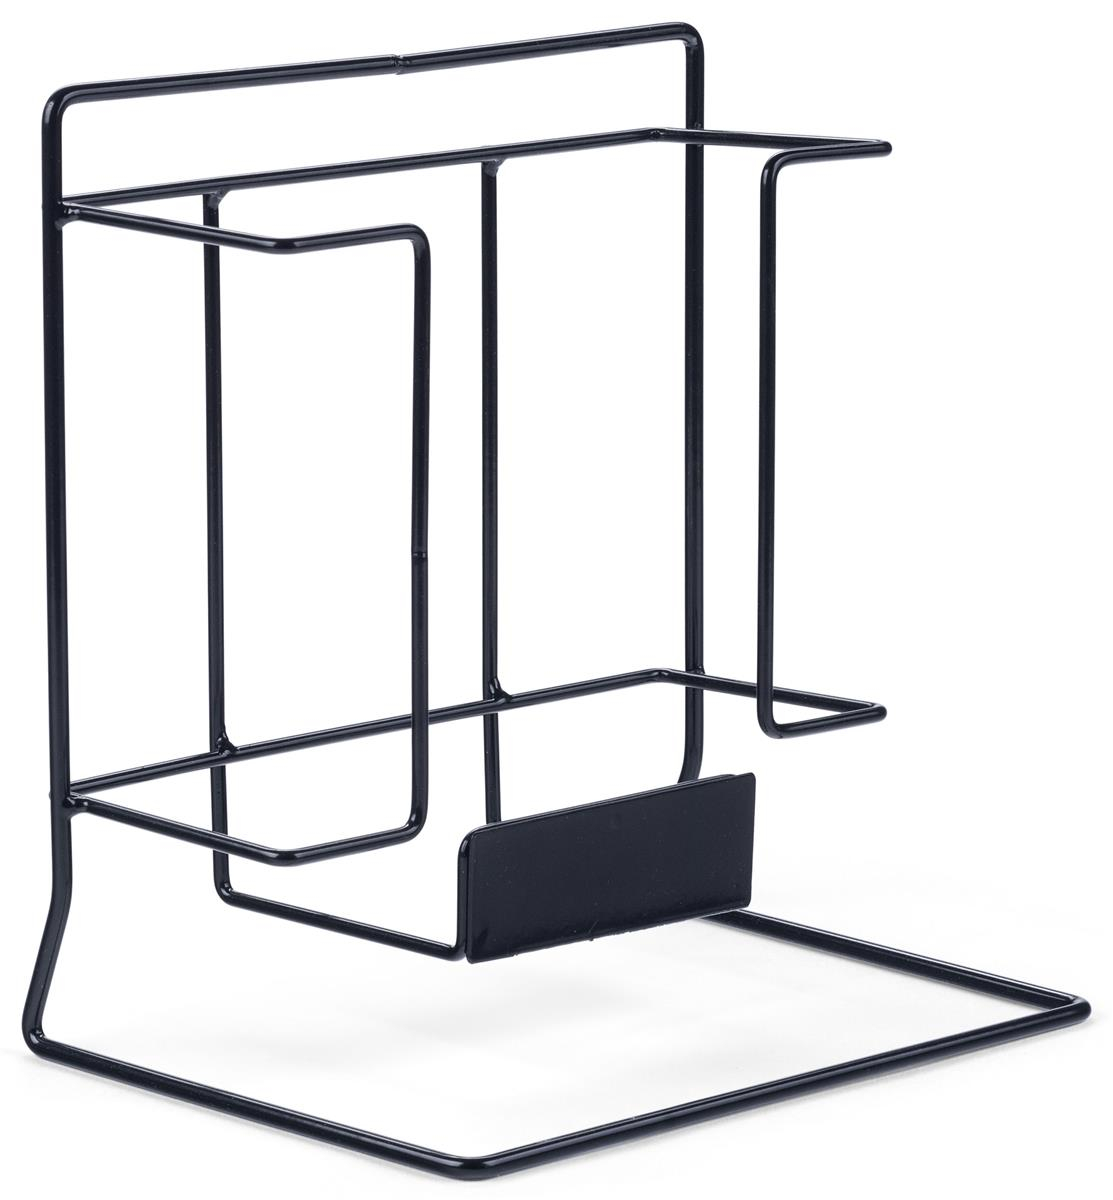 Single Wire Magazine Rack | Label Holder Included